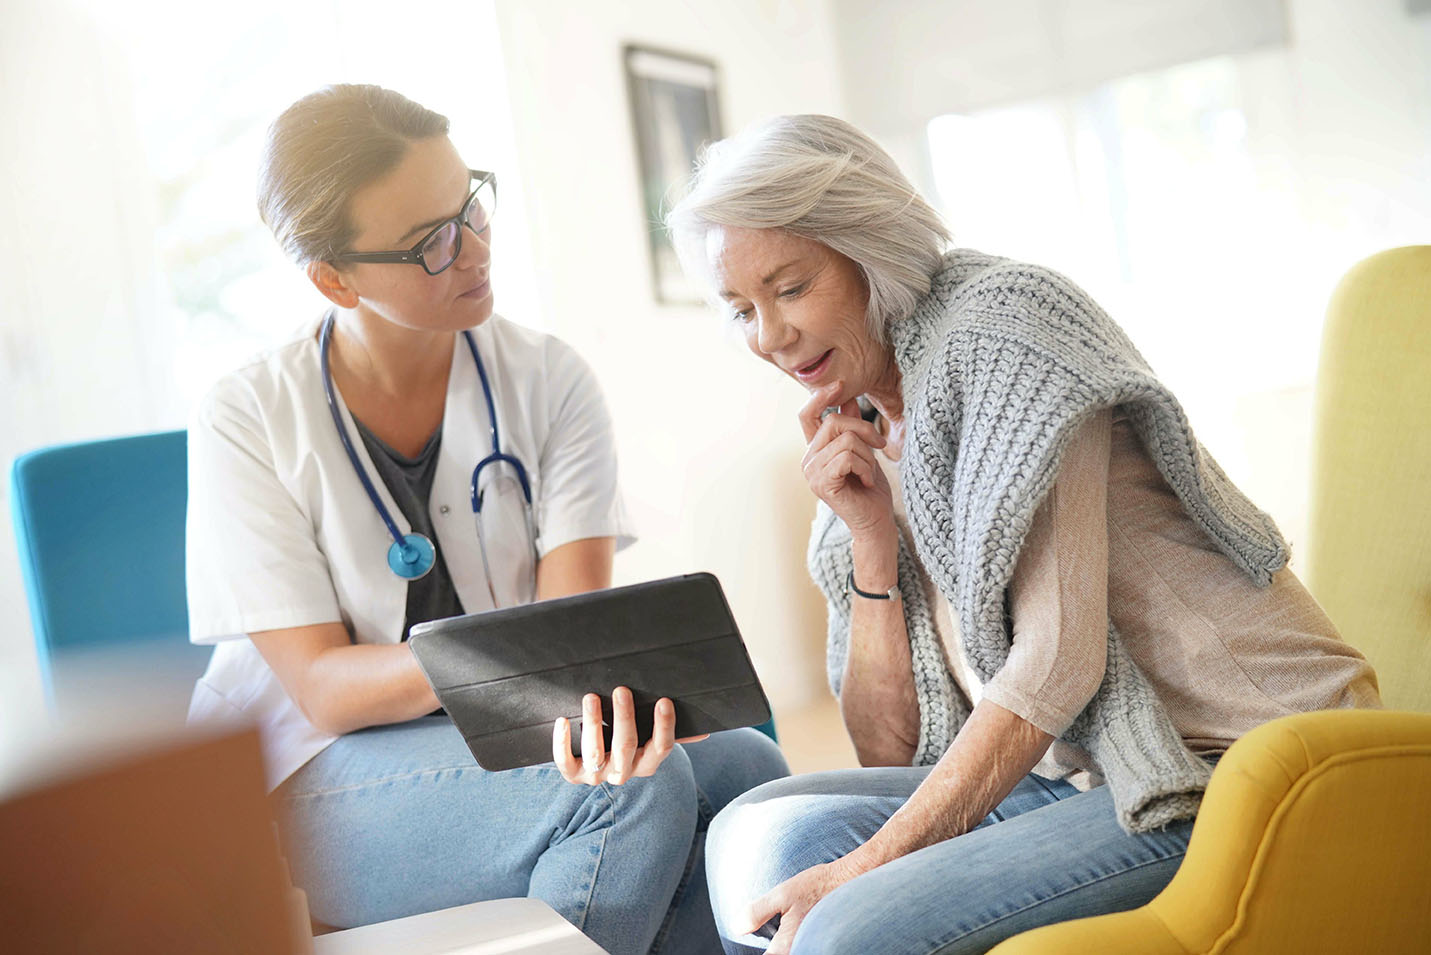 The importance of clinical mobility in connected Healthcare